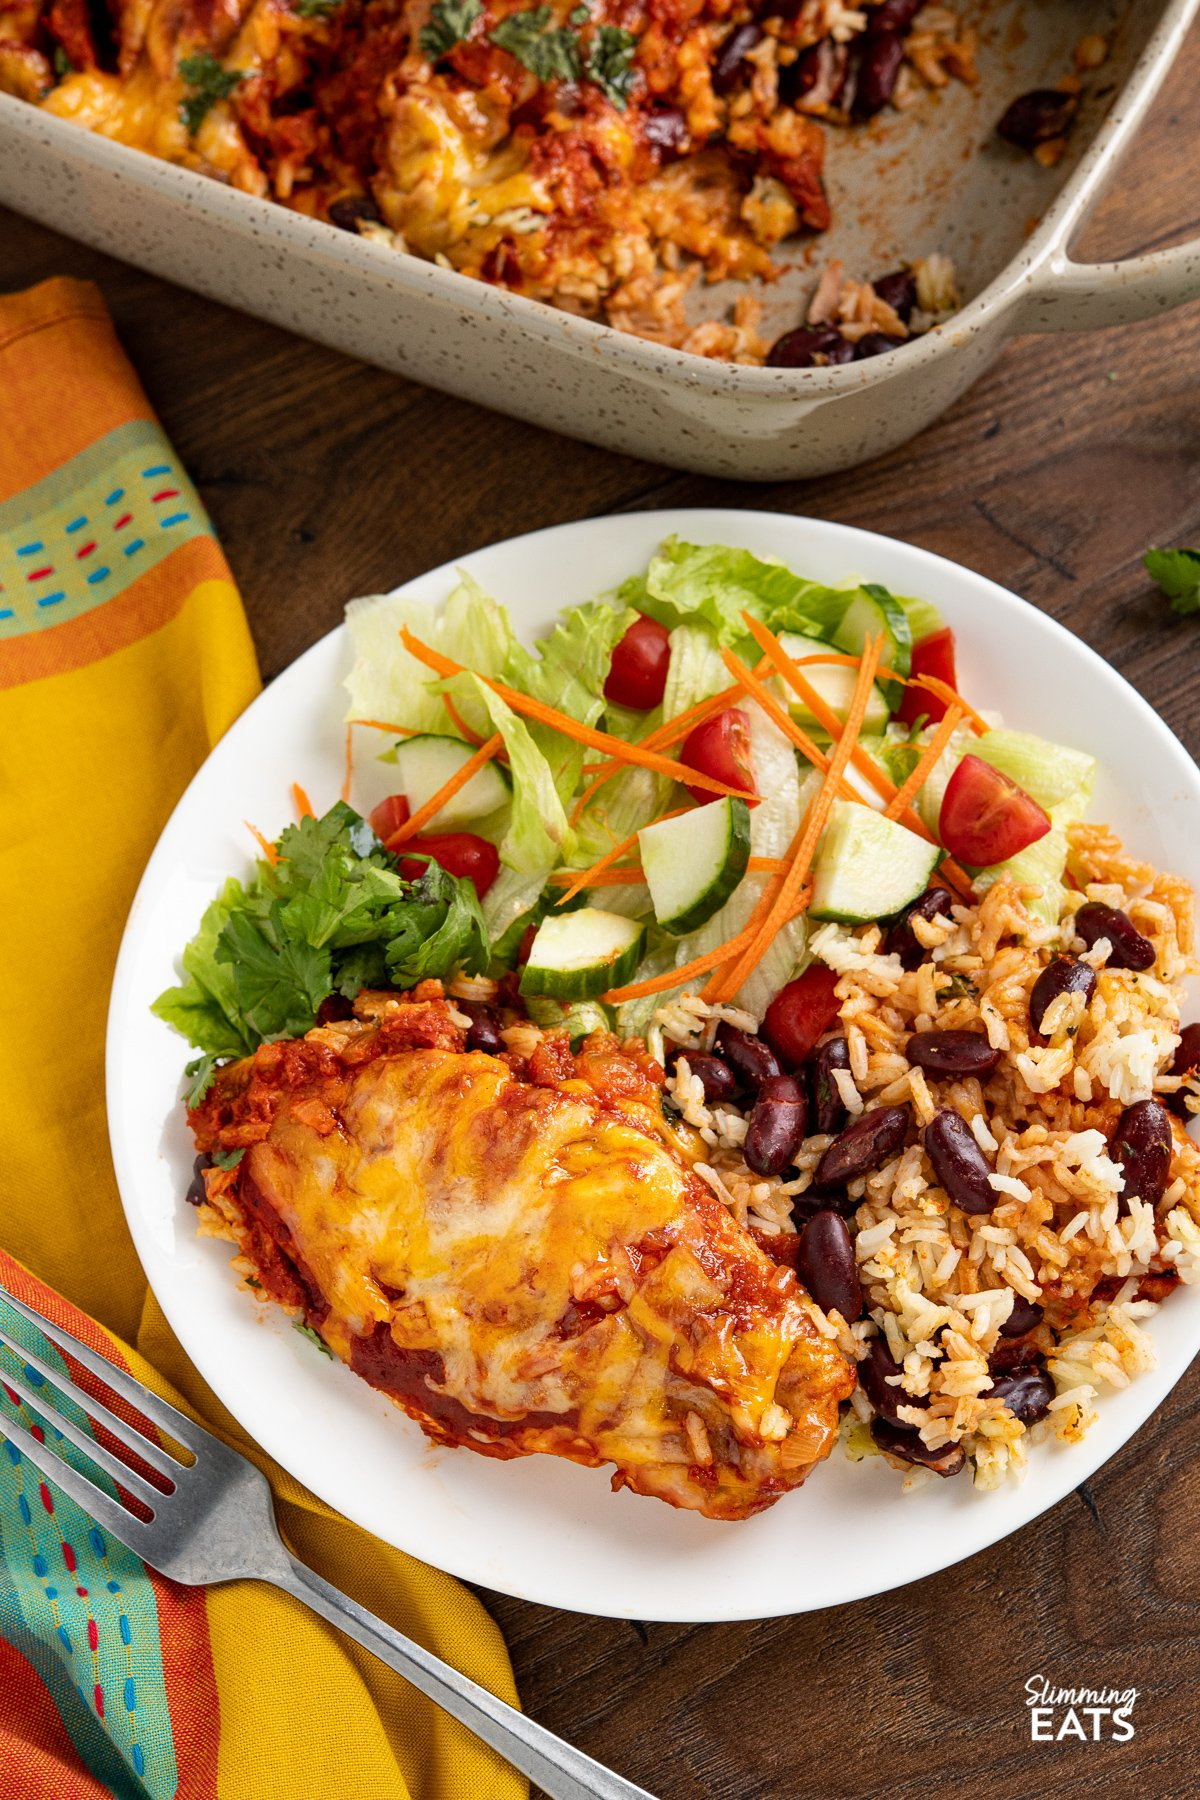 serving of Mexican Chicken and Rice Bake on a white plate with a mixed salad of lettuce, tomatoes, cucumber and carrot.